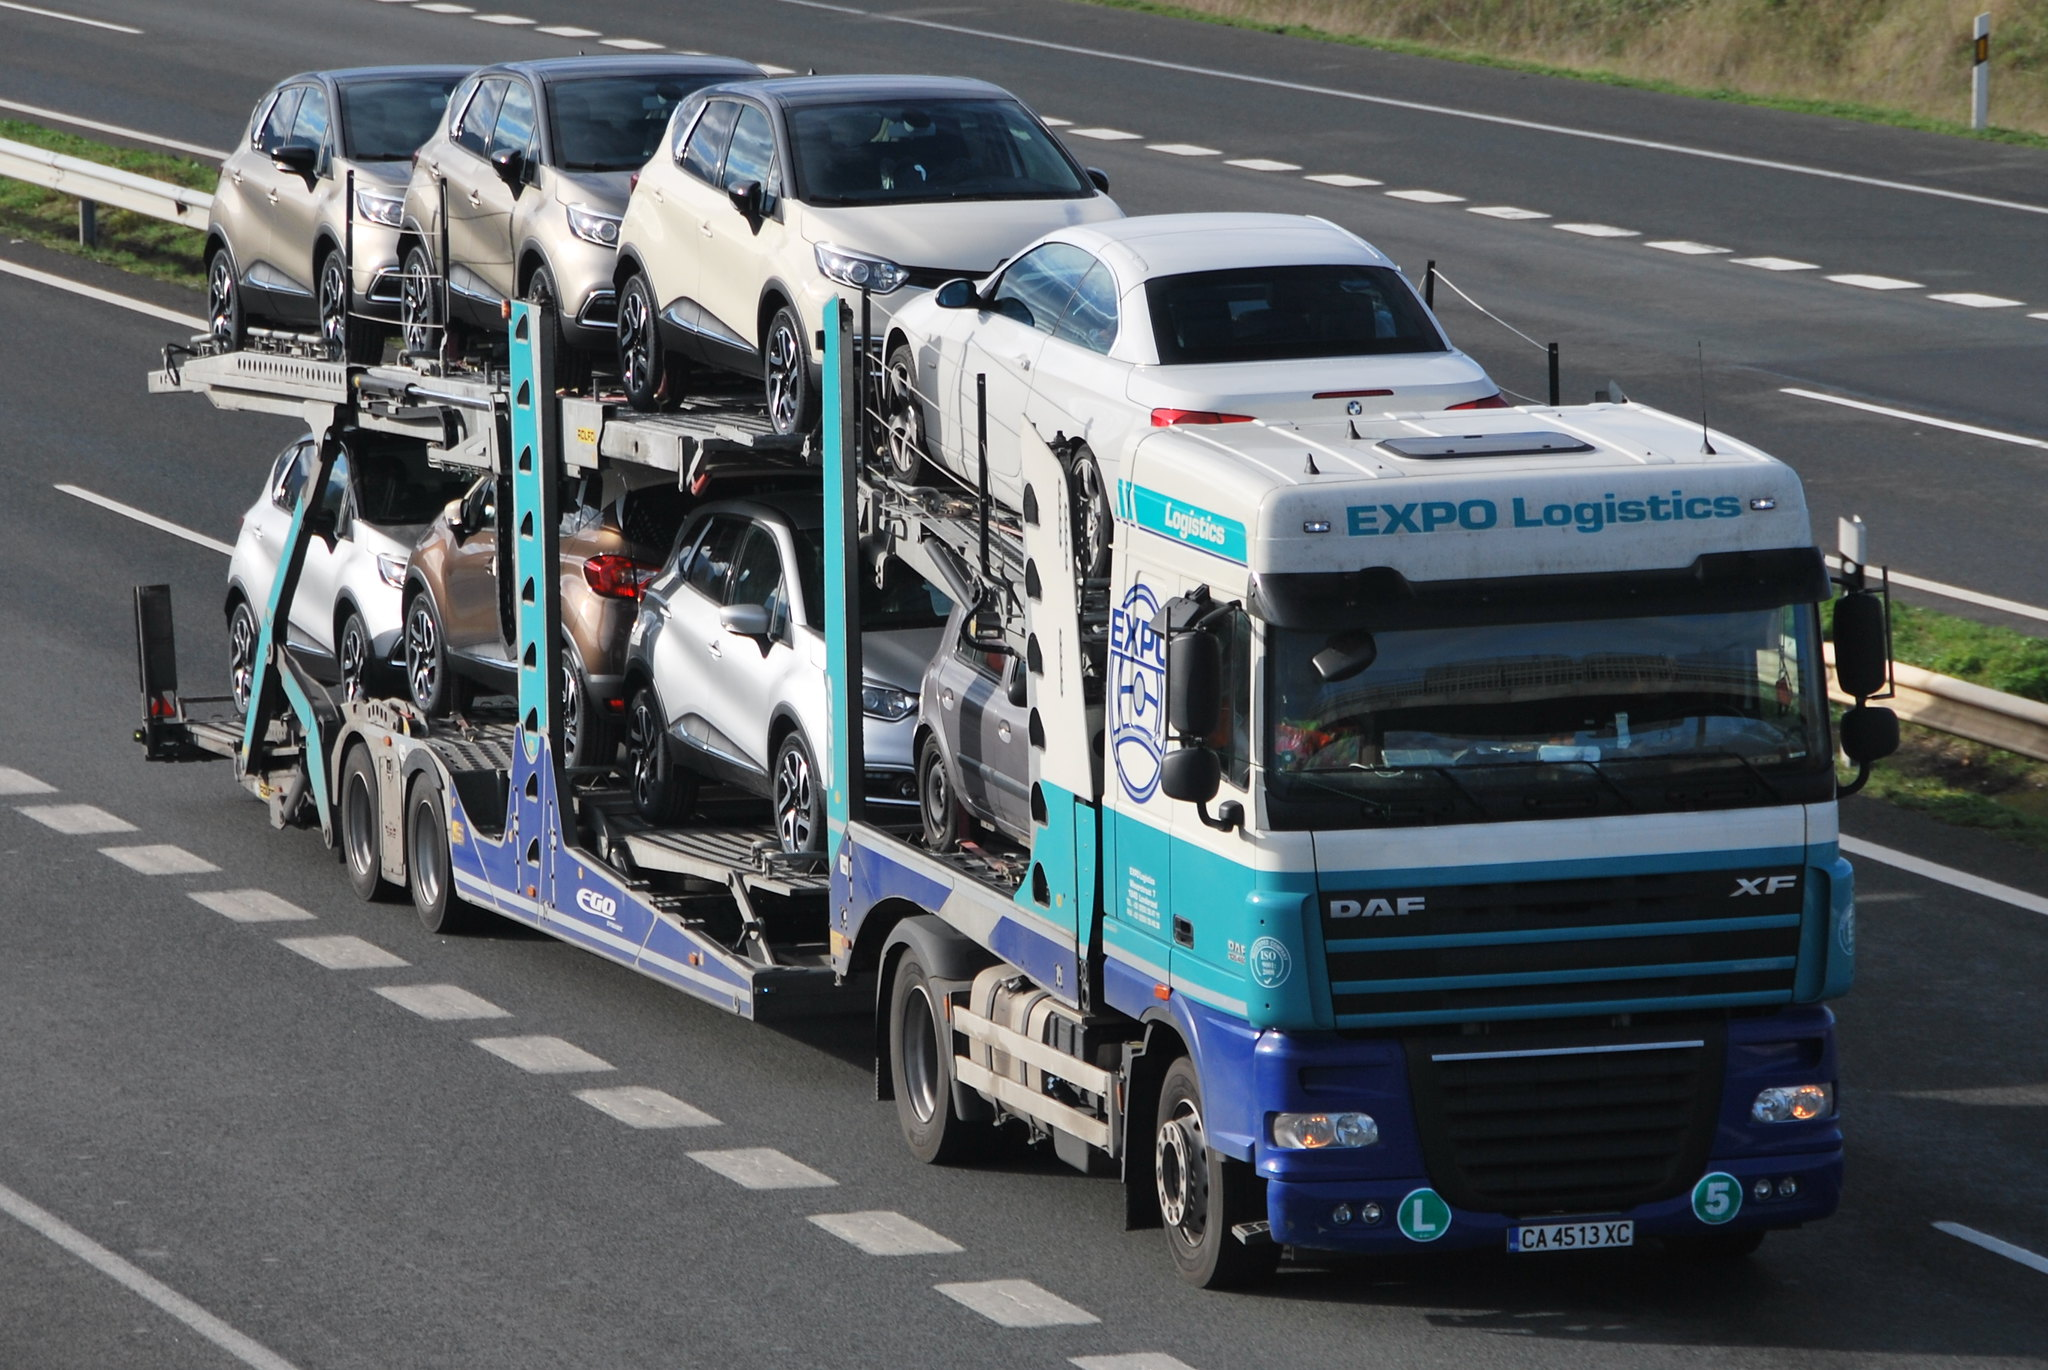 Logistics: Truck transporting cars